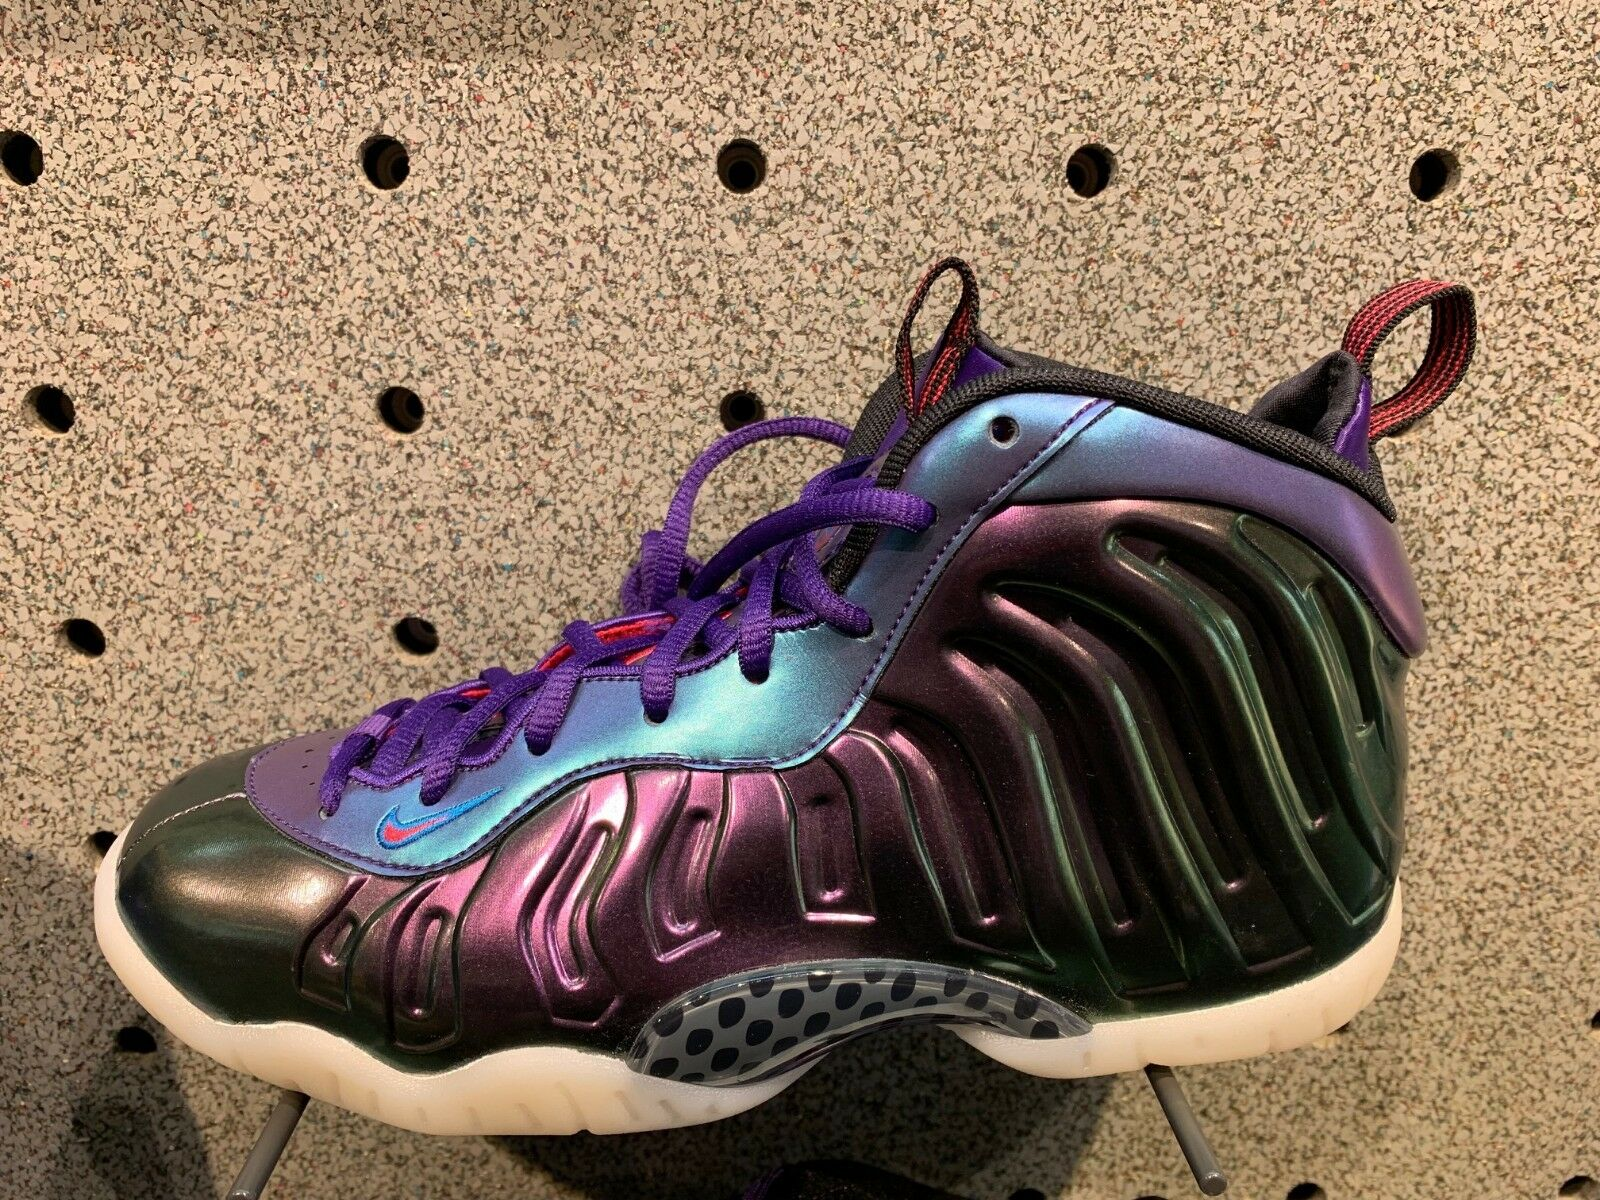 Nike Foamposite Lil Posite One Rush Pink Neptune blueee GS PS TD Infant Size 1C-7Y